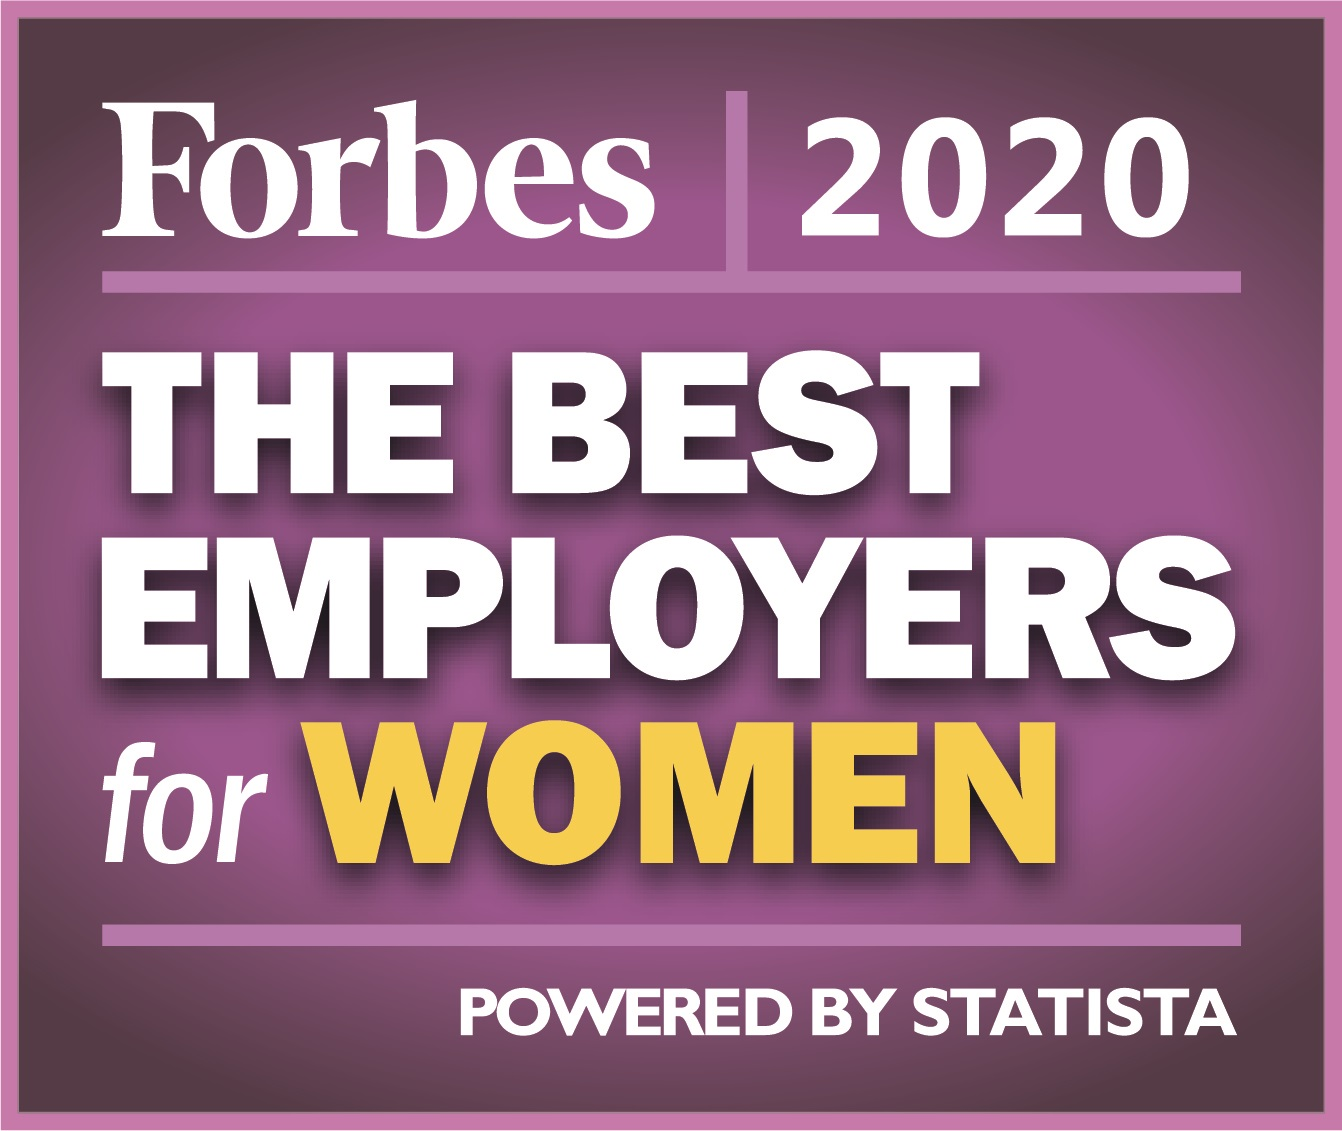 Forbes 2020 Best Employers for Women logo